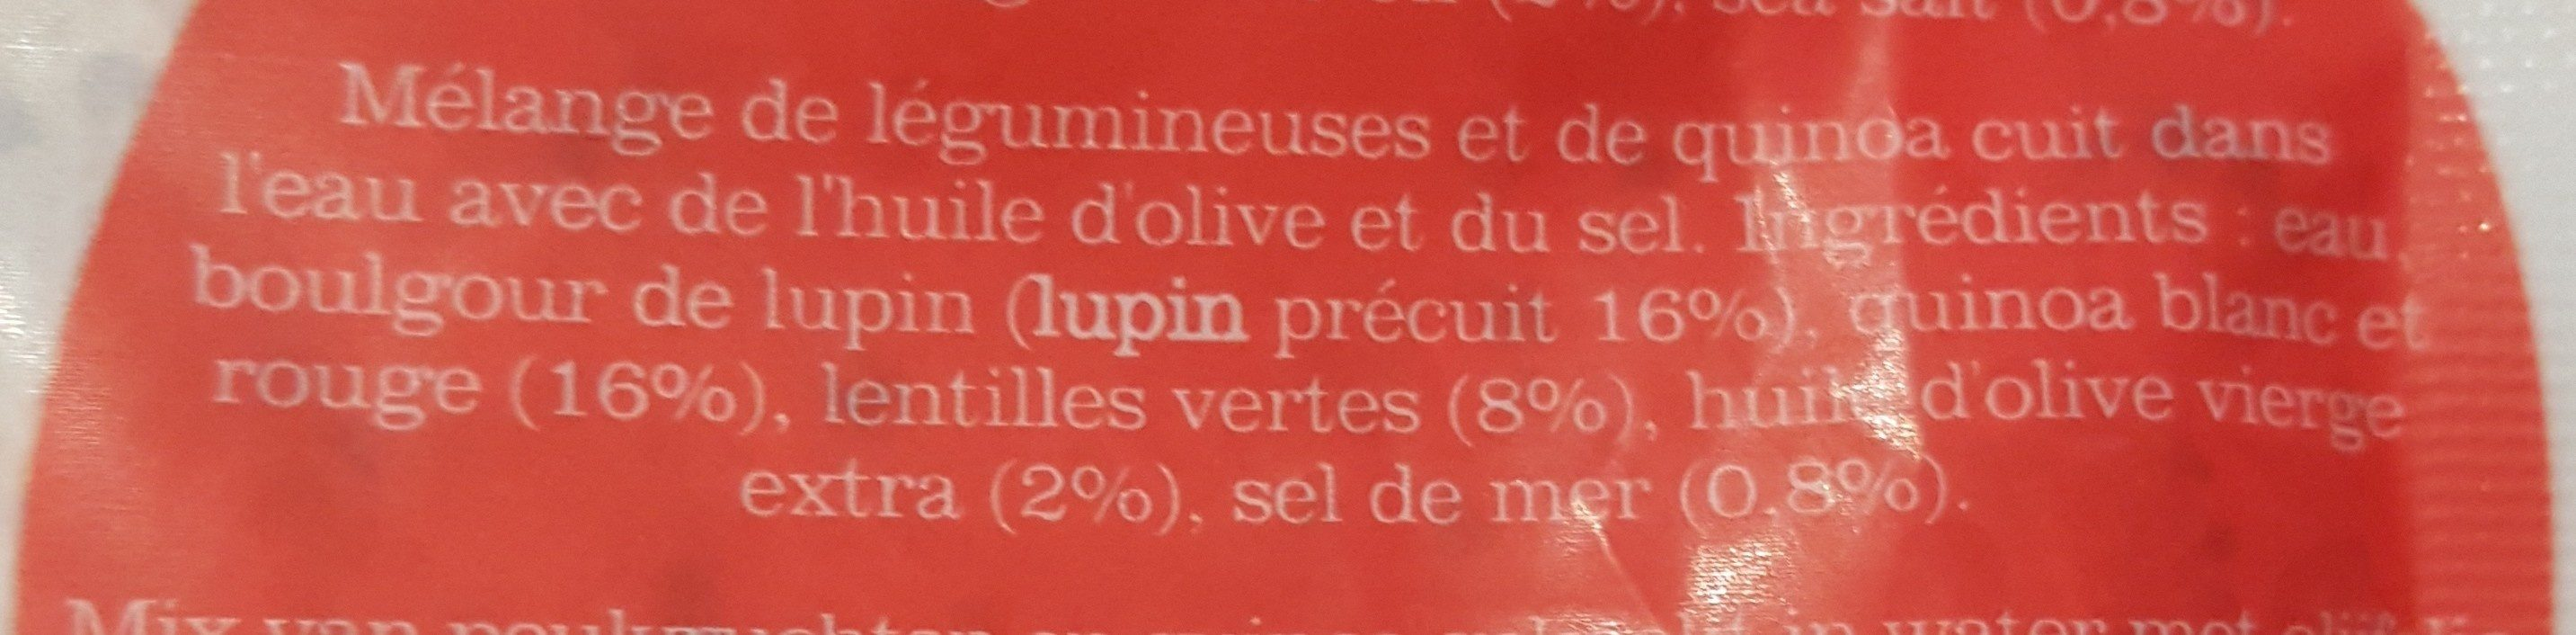 Bulgur mix with lupin, quinoa & lentils - Ingredients - en